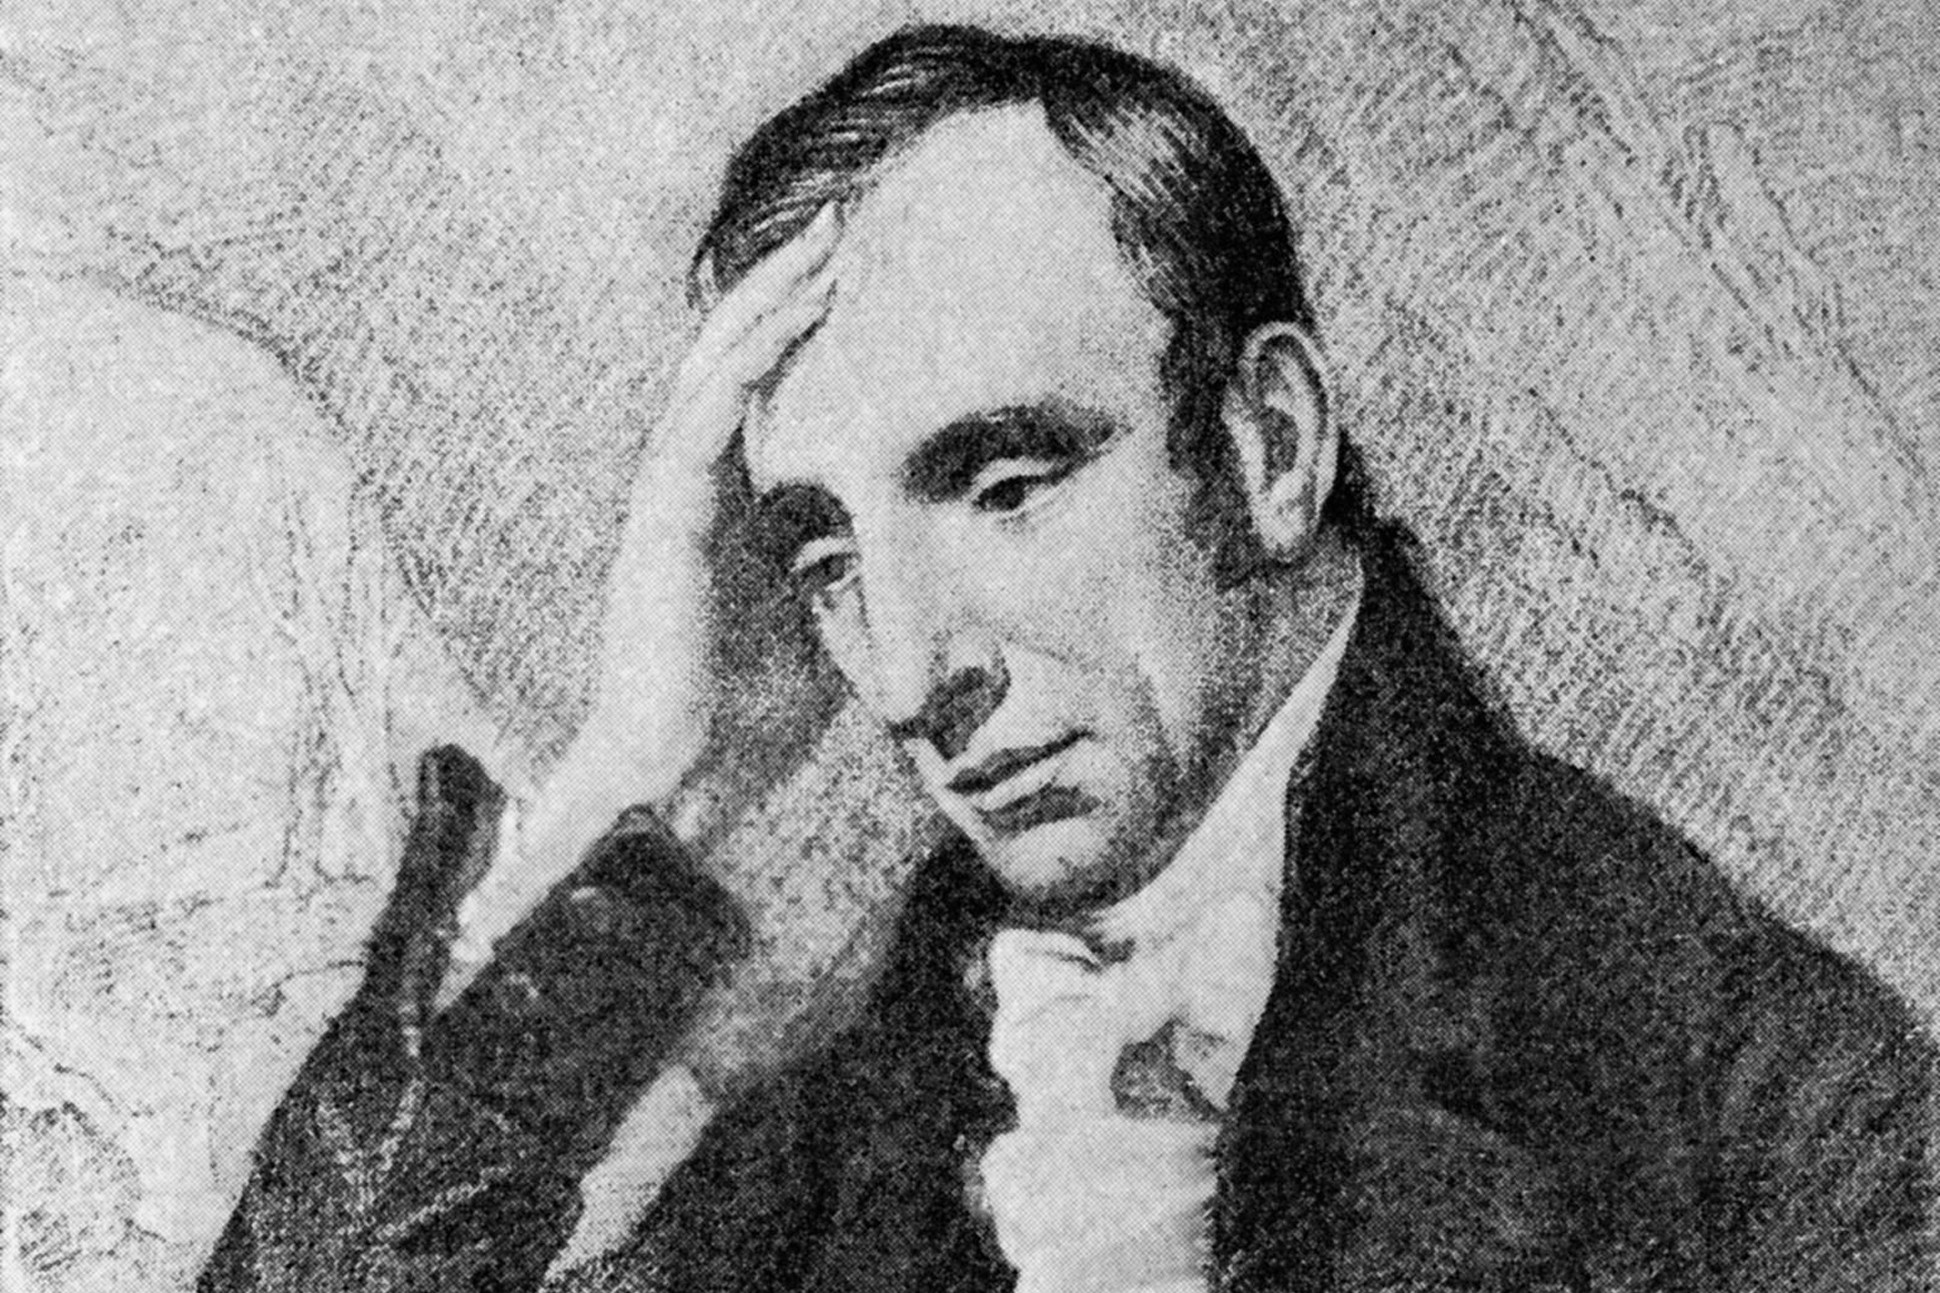 Etching of William Wordsworth.